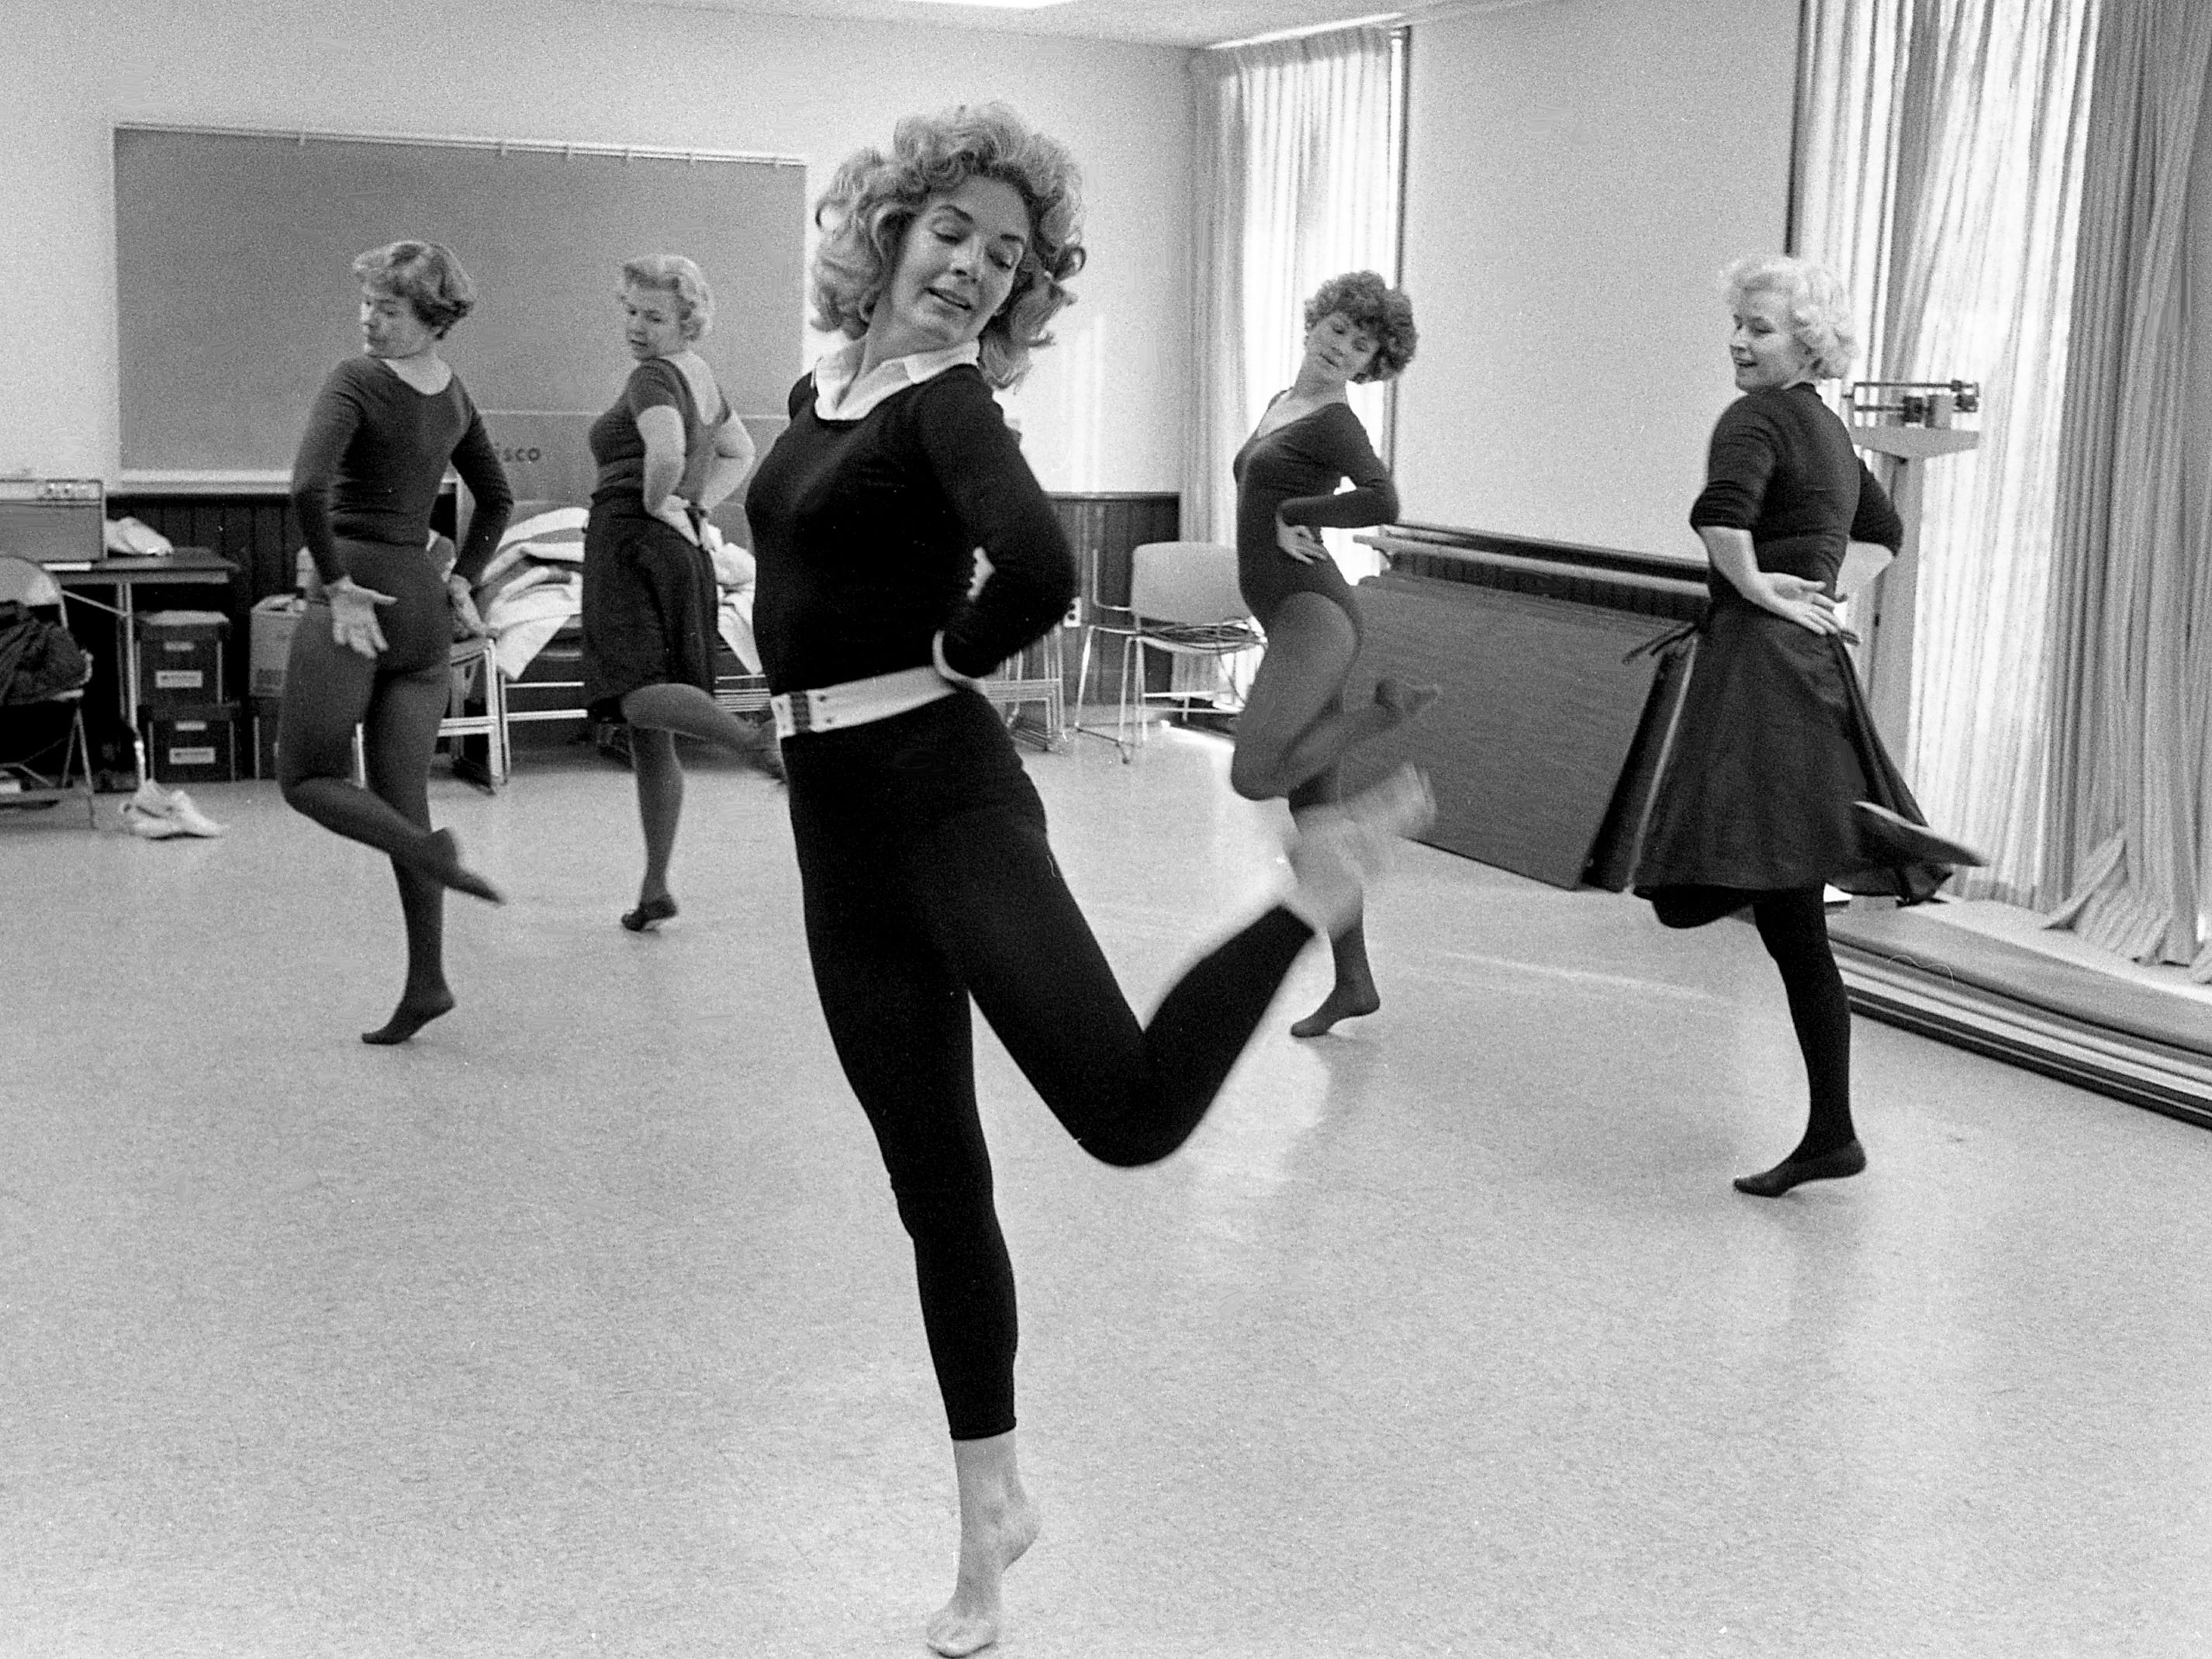 """Saturday Night Fever"" furnishes music for the""Disco Fit-Disco Trim"" class conducted by Dotty Mahanes, front, at the Southwest Family Branch of the YMCA on Jan. 3, 1979. In the class are Anne Wilson, left, Emily Parrish, Becky Bainbridge and Becky Clayton."